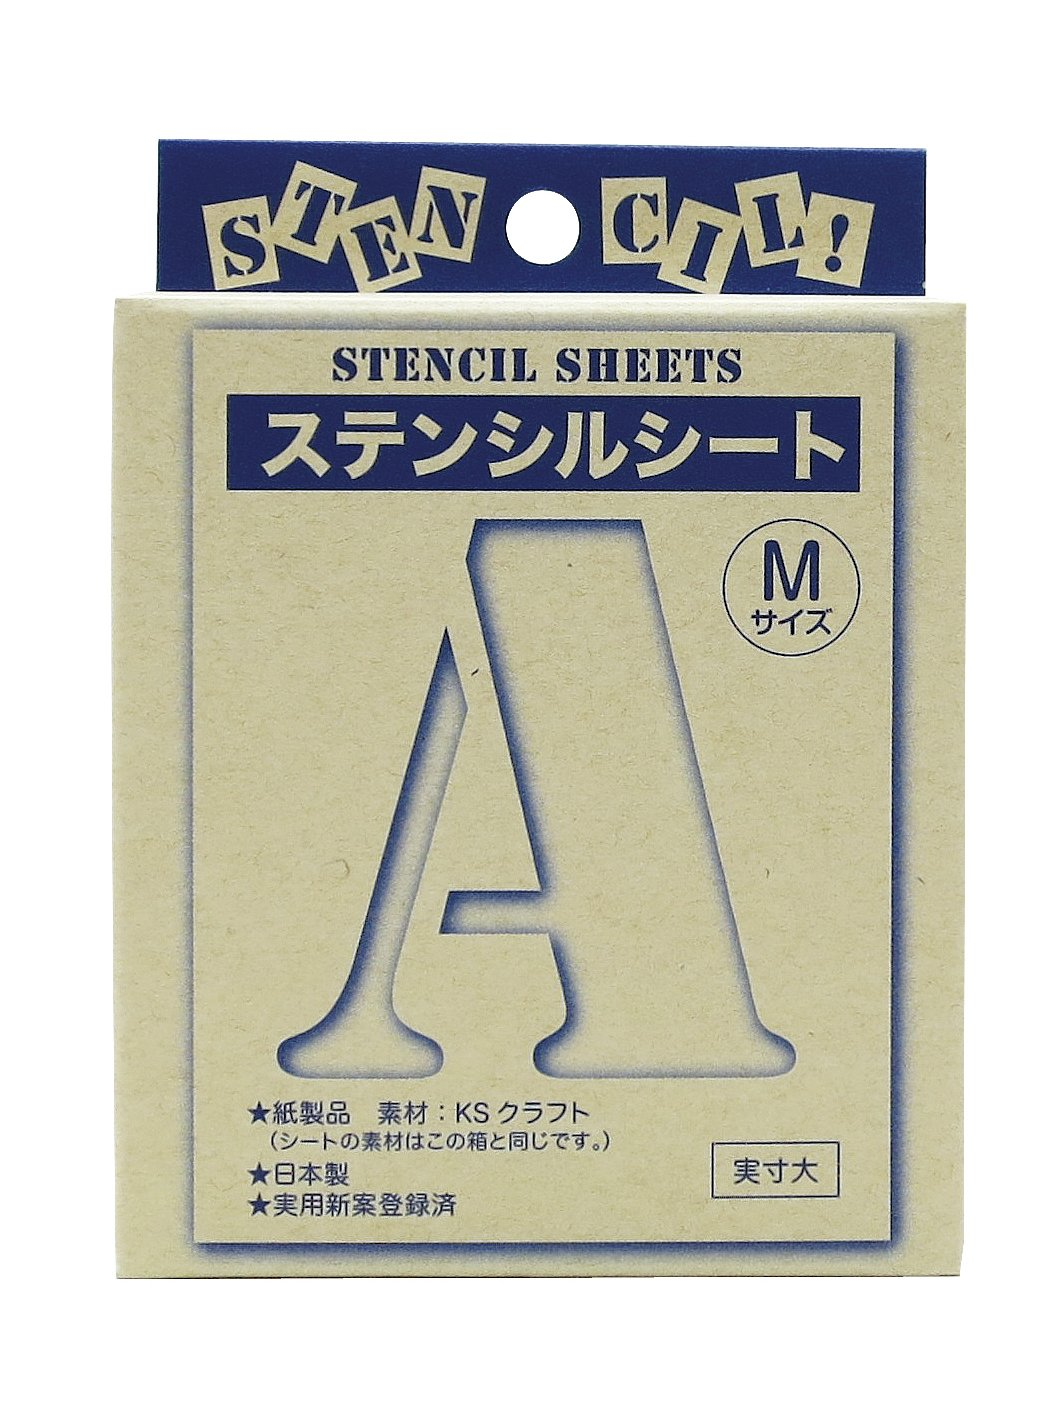 M stencil paper sheet 54 piece about 59mm (alphanumeric characters 47) character length (japan import) Ltd. Johoku